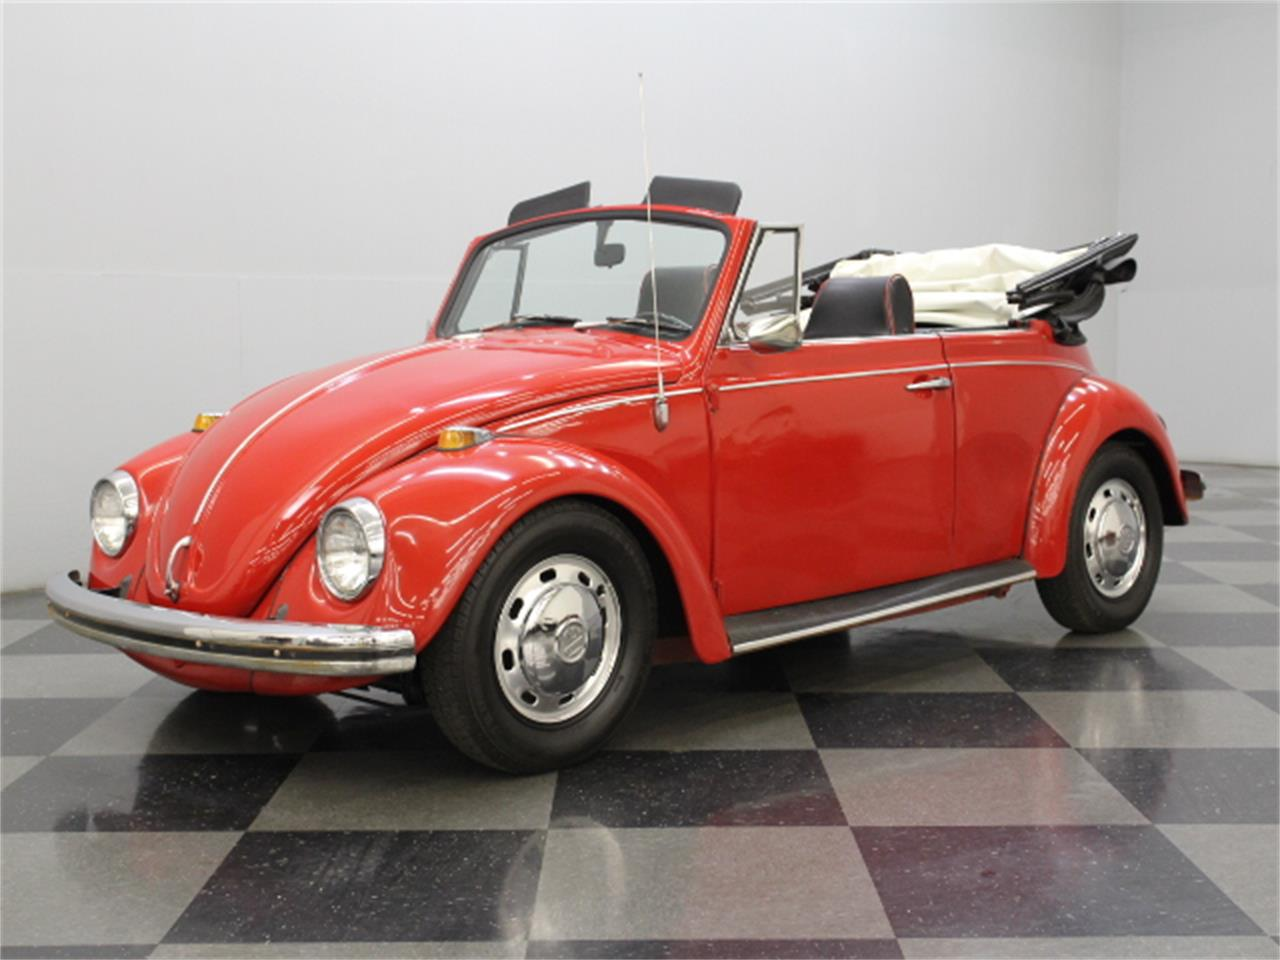 Large Picture of 1969 Volkswagen Beetle located in Marietta Georgia - $13,900.00 Offered by a Private Seller - KV8K